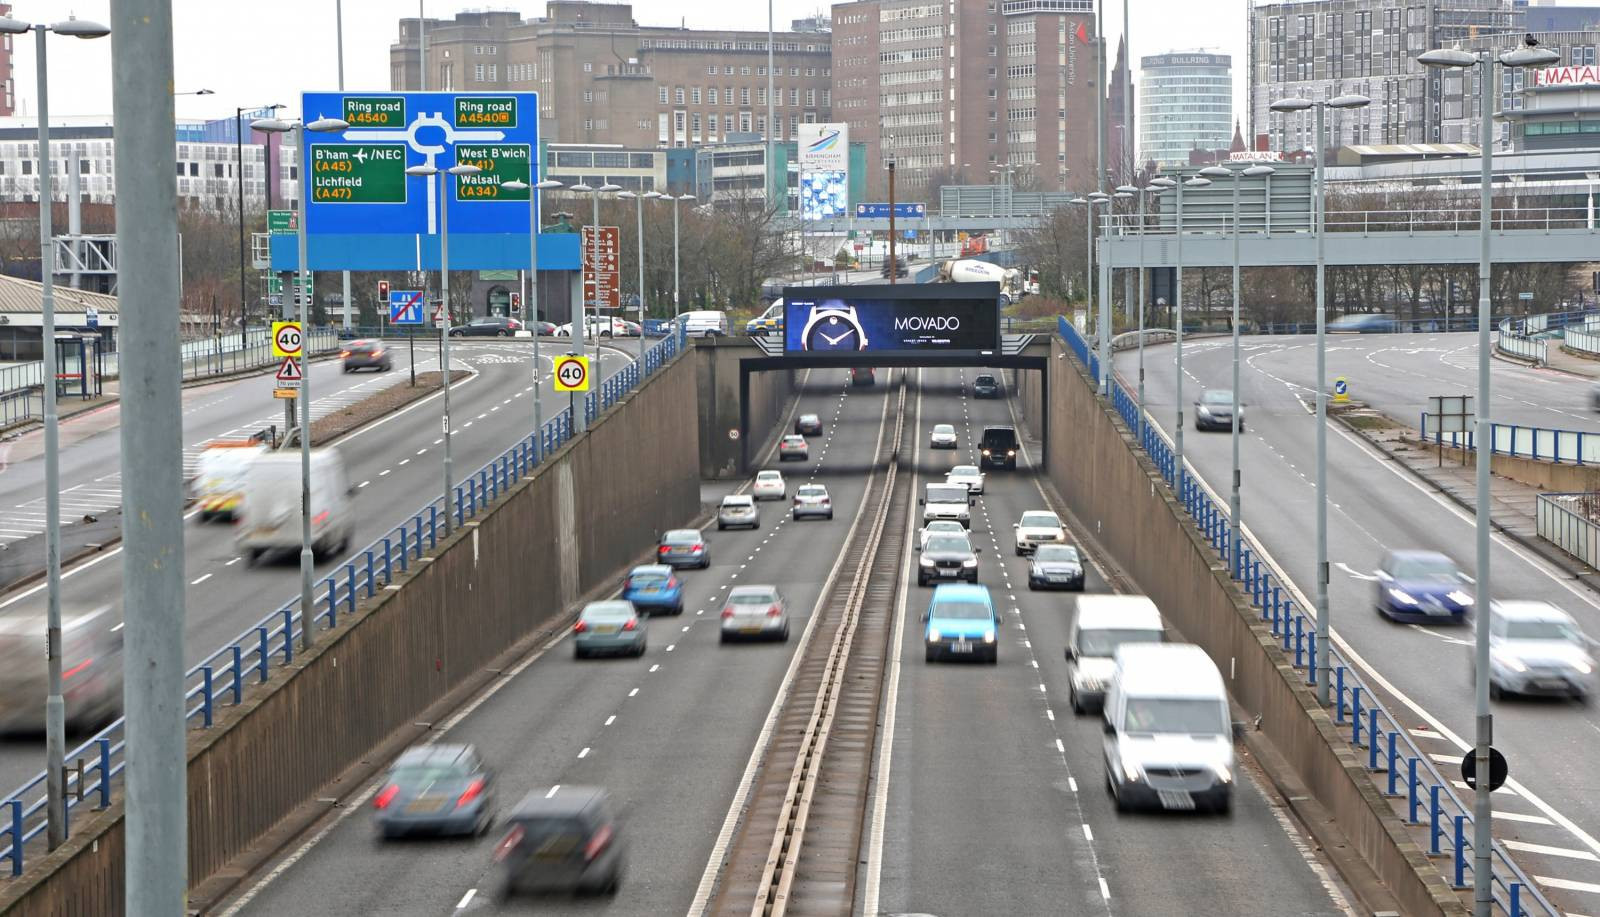 The Birmingham Commonwealth Games Bill gives the Government's Transport Secretary special powers to introduce measures to ensure traffic operates smoothly during the events in 2022 ©Getty Images